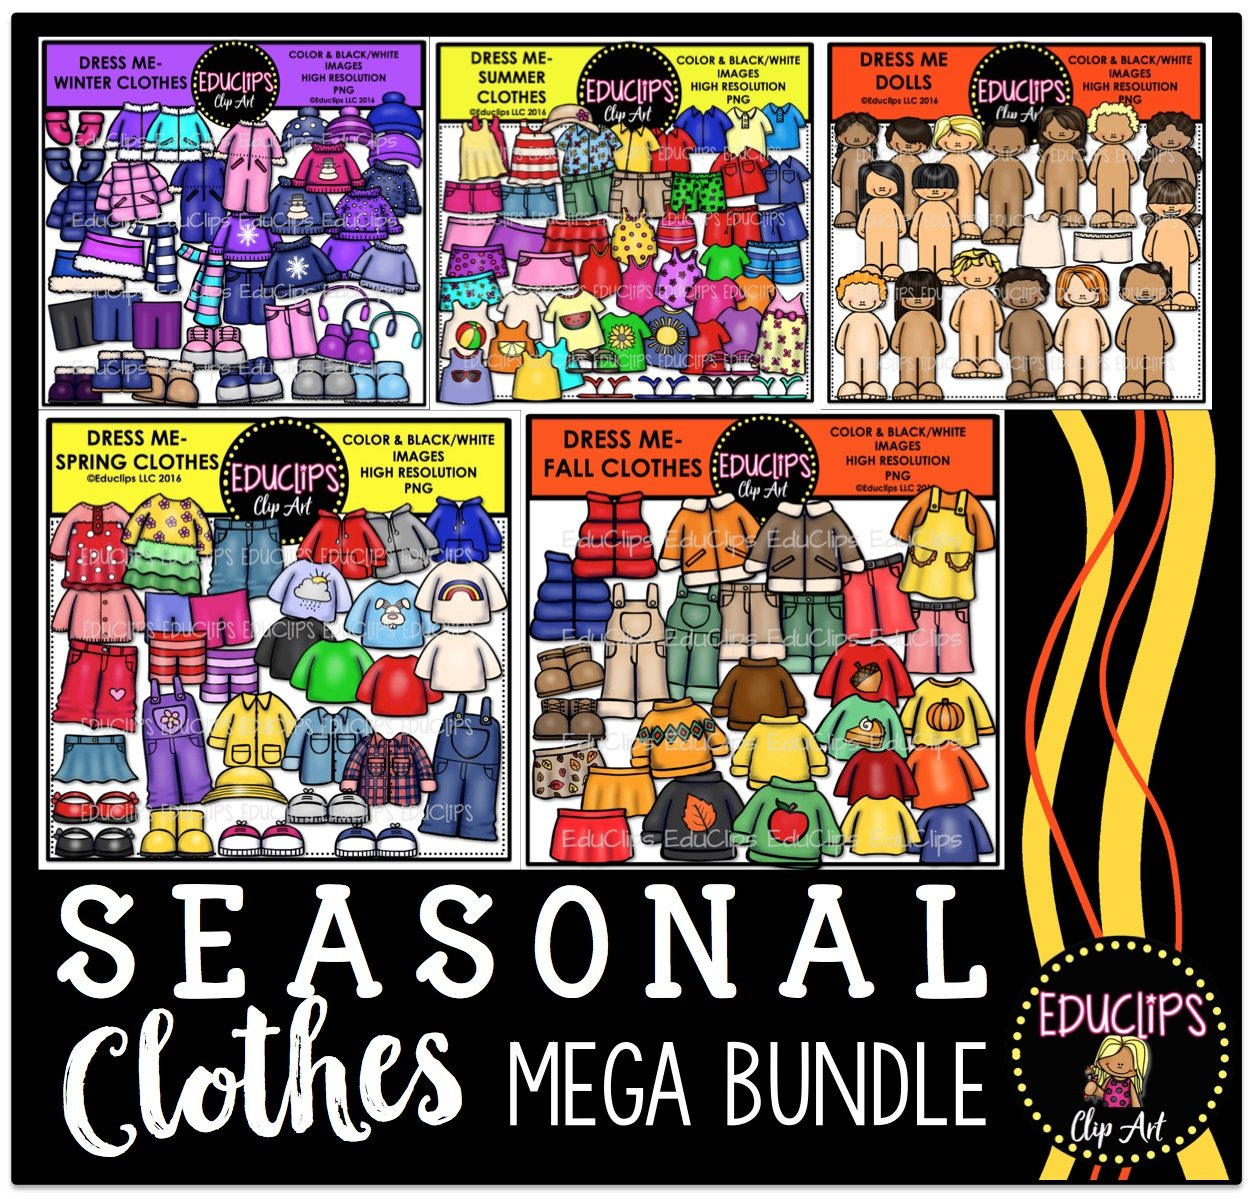 Storing seasonal clothes